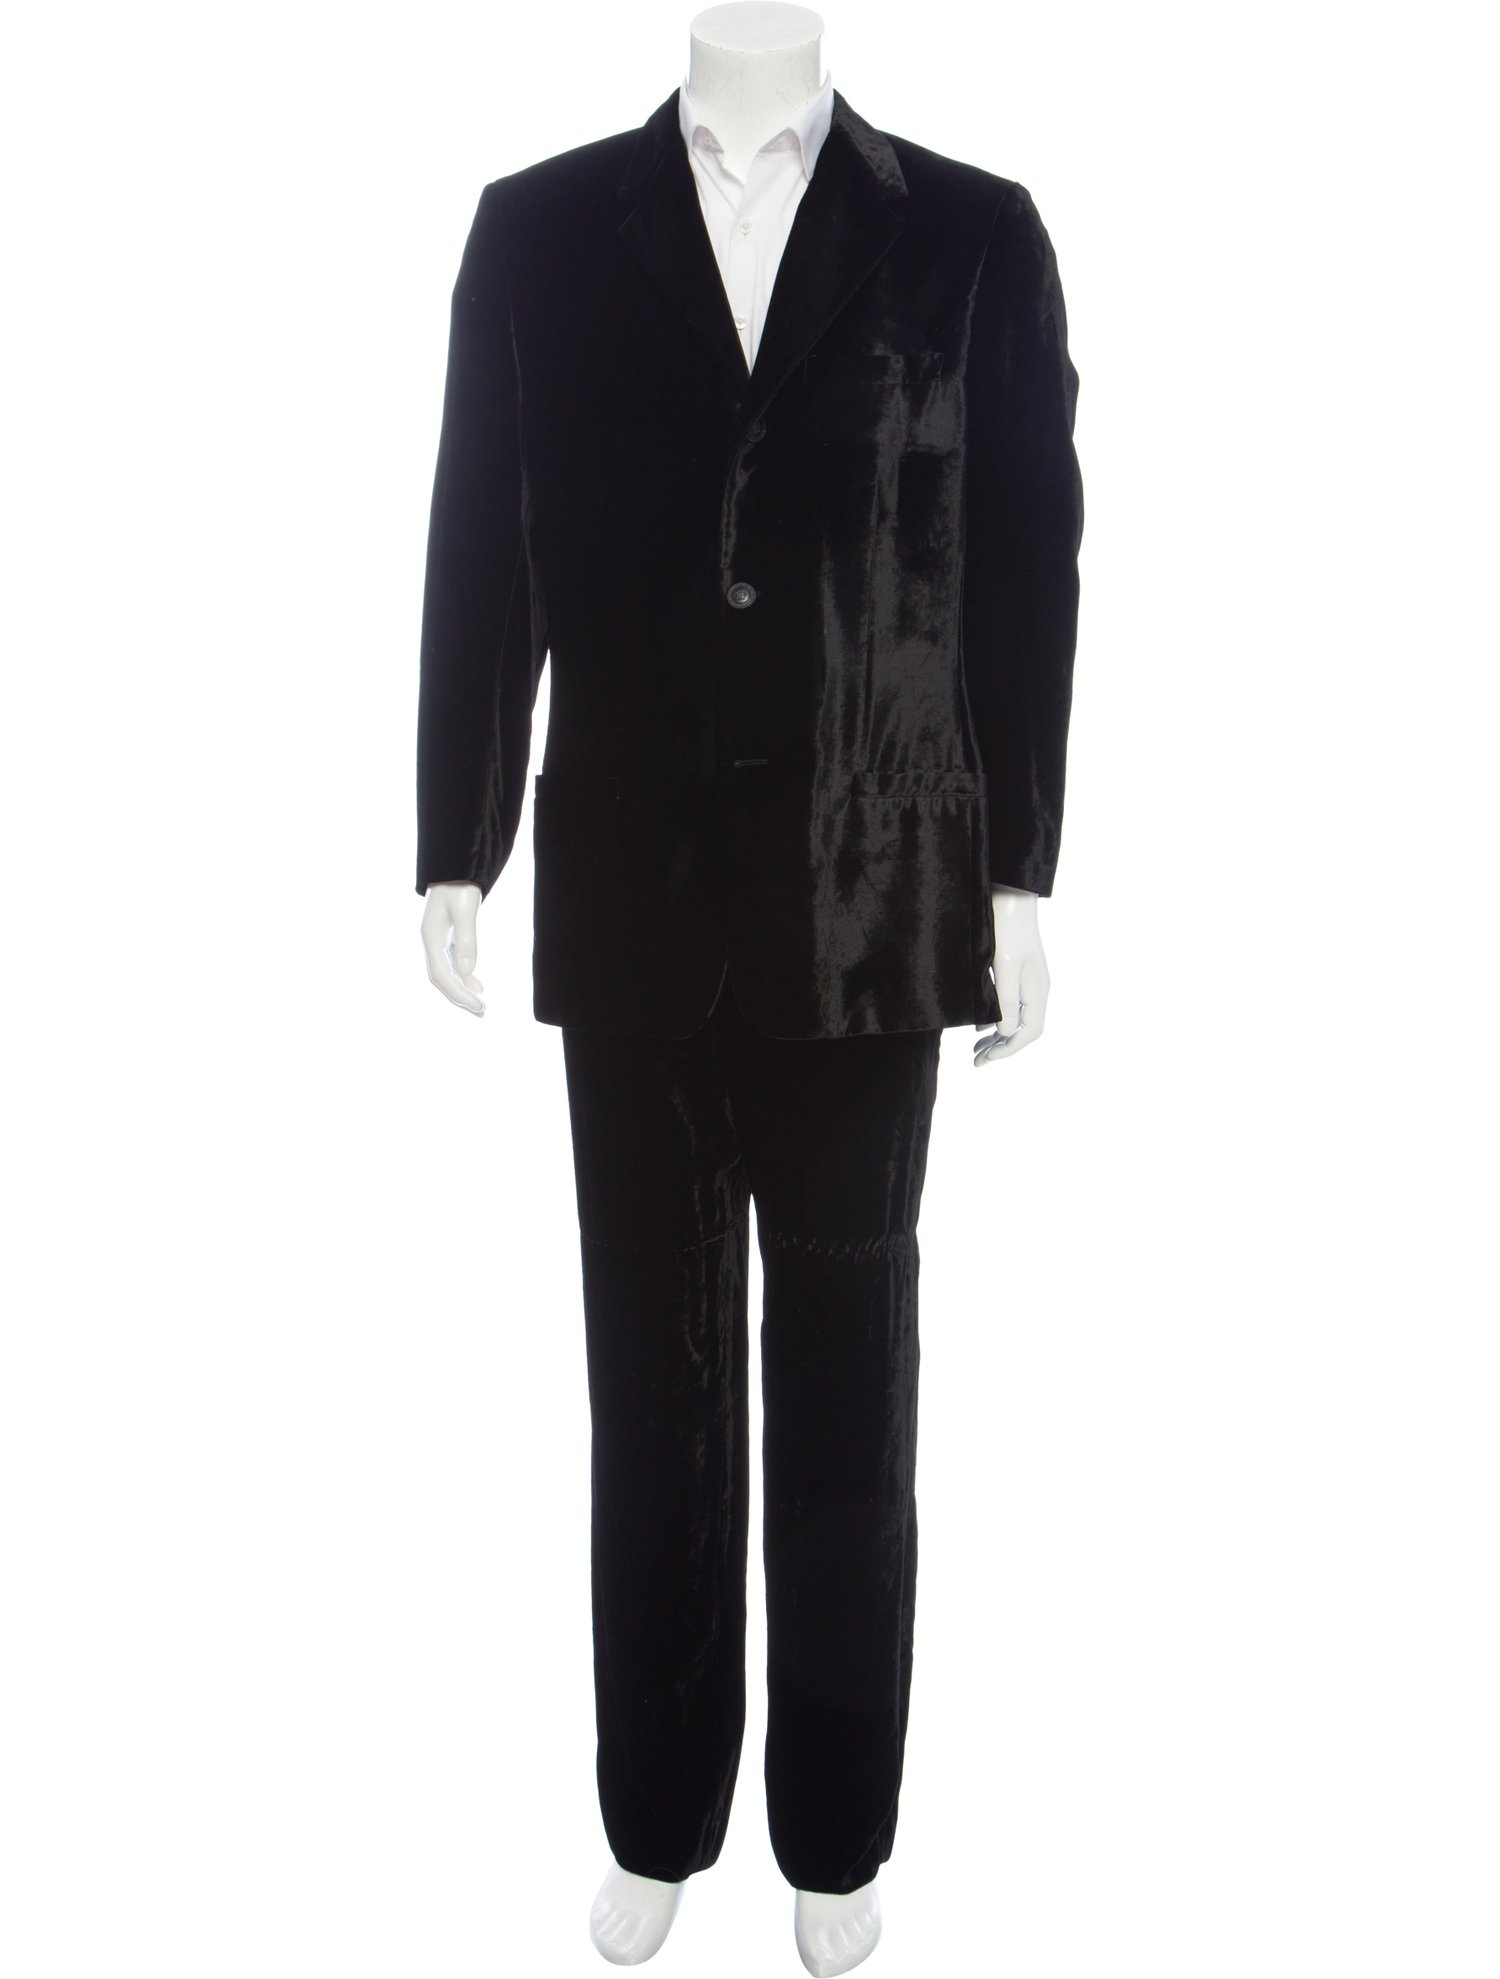 Vintage Versace Velvet Men's Two-Piece Suit, $472 @therealreal.com